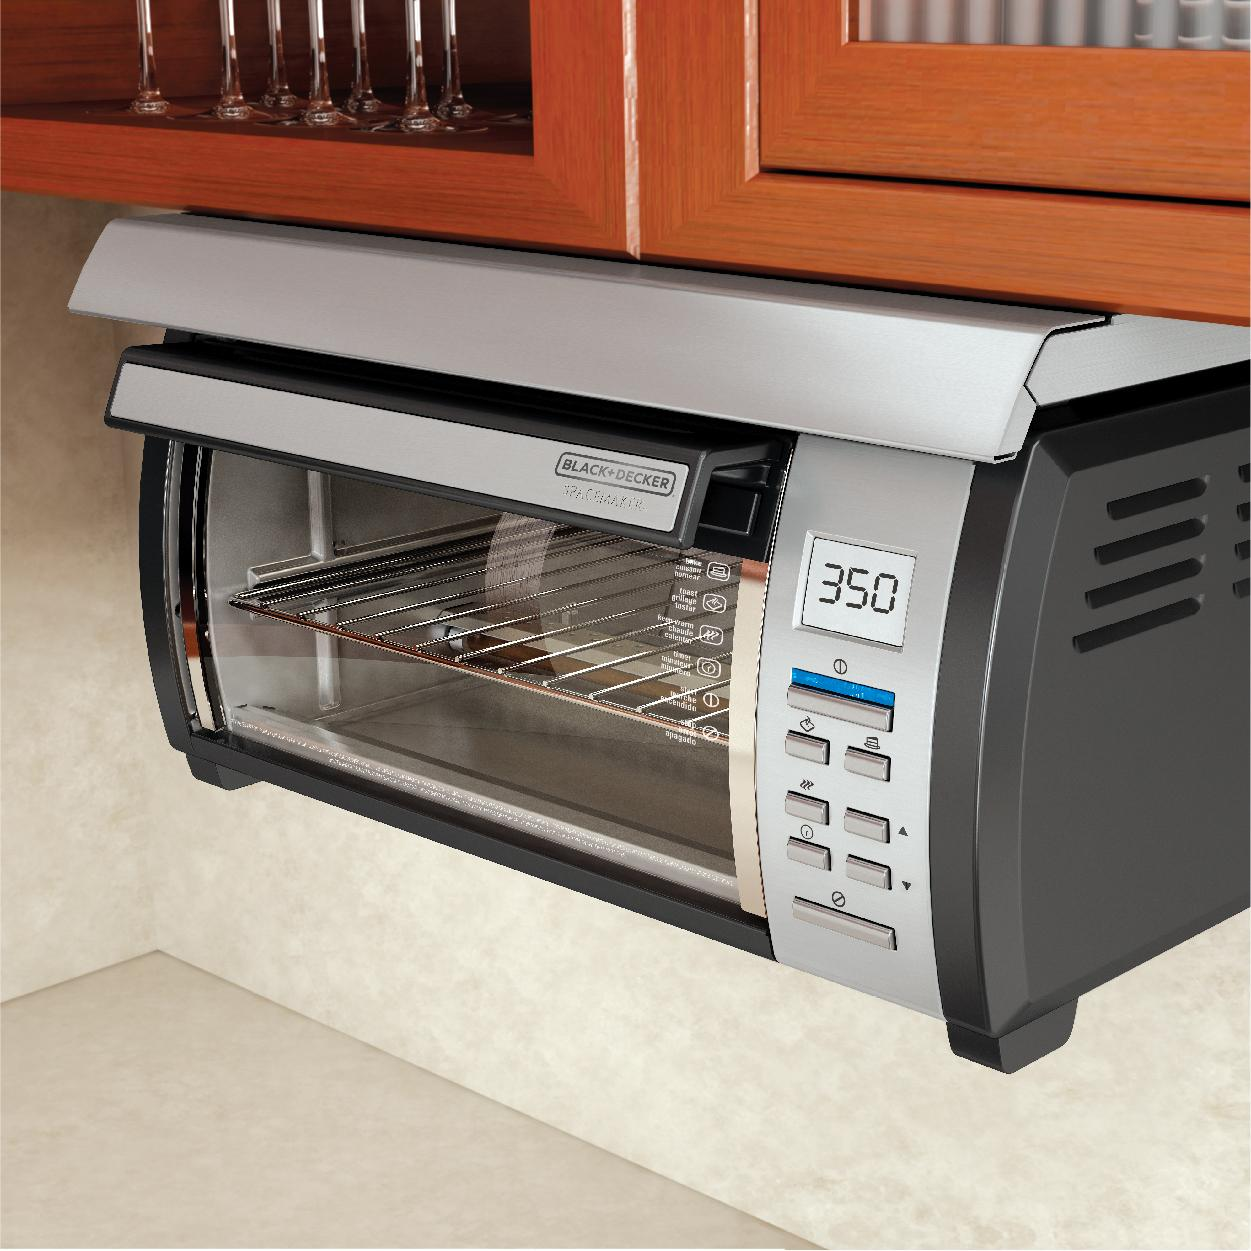 ... Space Maker Under Counter Toaster Oven, Black/Stainless eBay